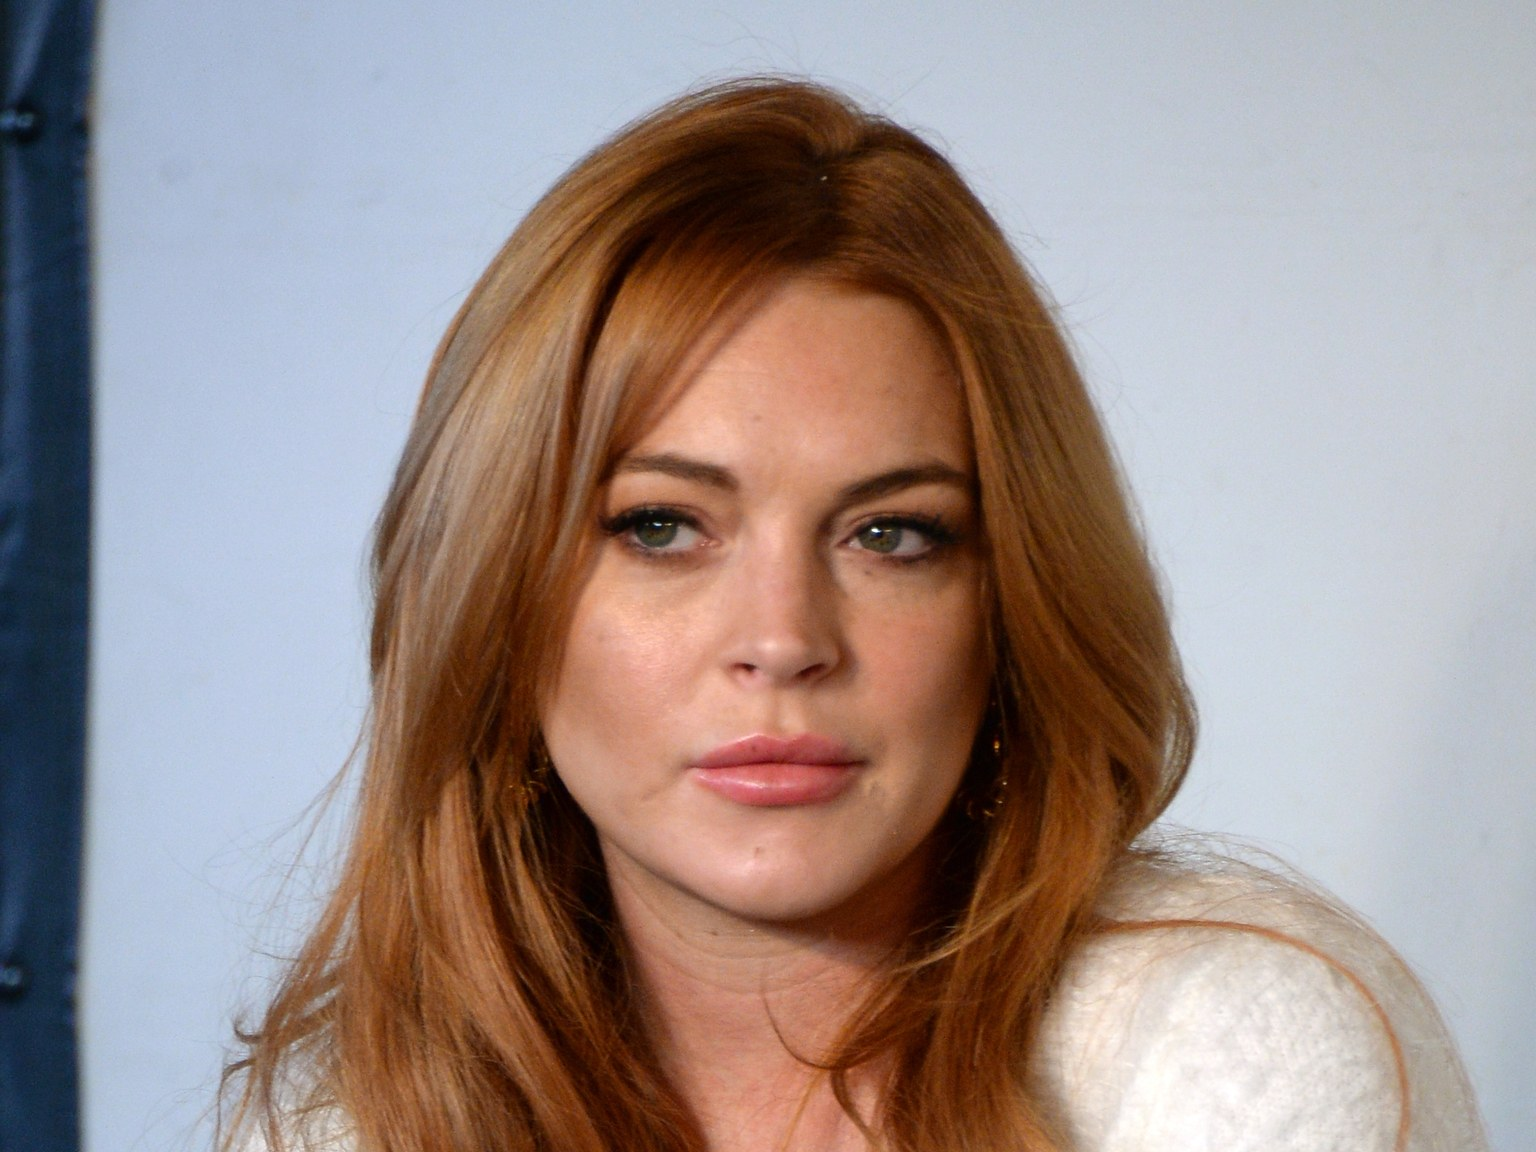 Lindsay Lohan 'Still Drinks And Has Never Really Stopped Drinking' Following Rehab